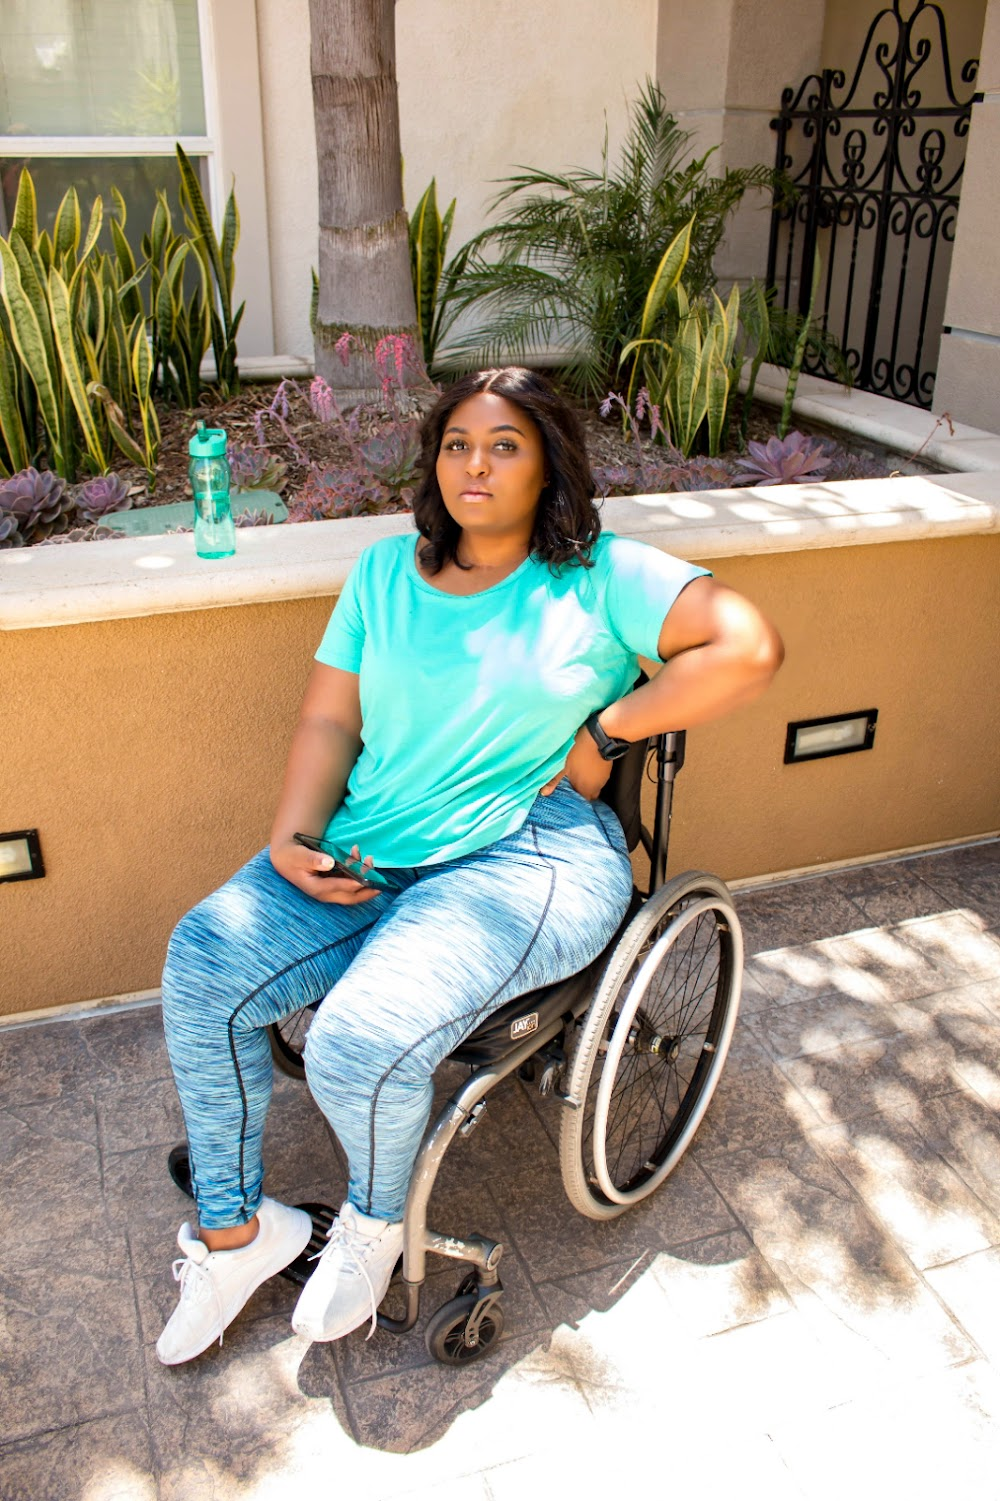 Loosing weight with disability